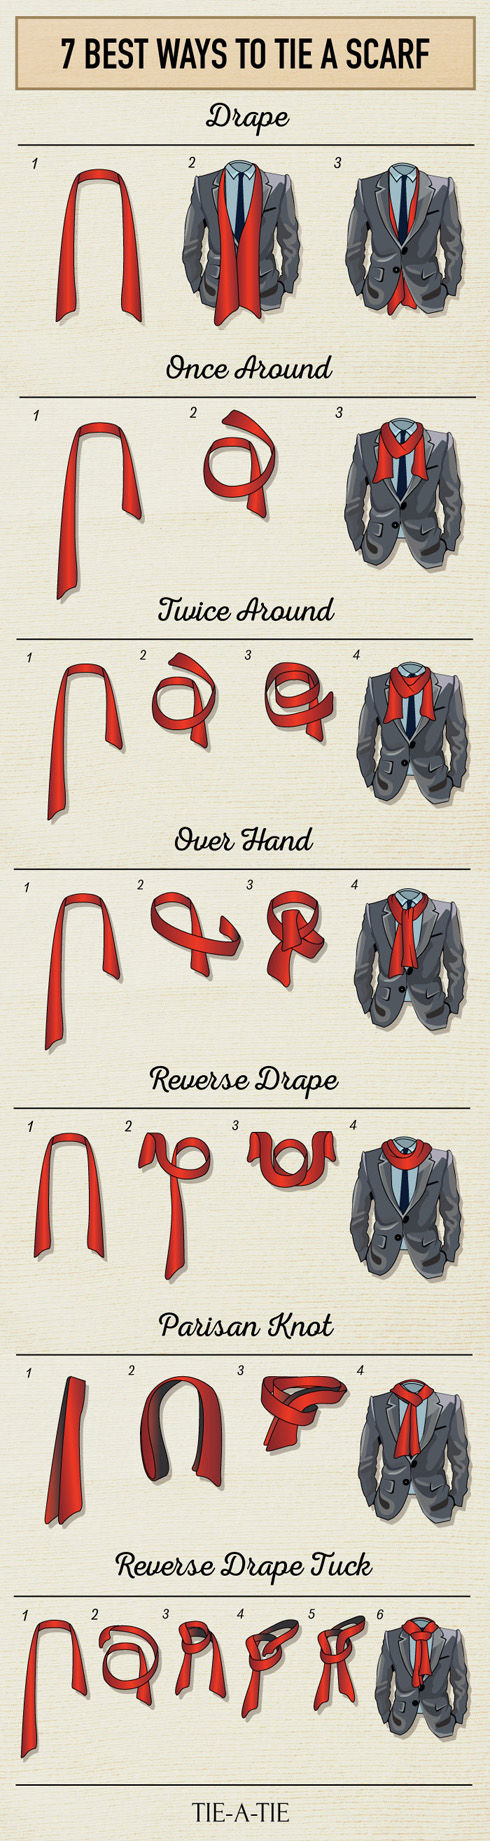 7 best ways to tie a scarf pictures photos and images